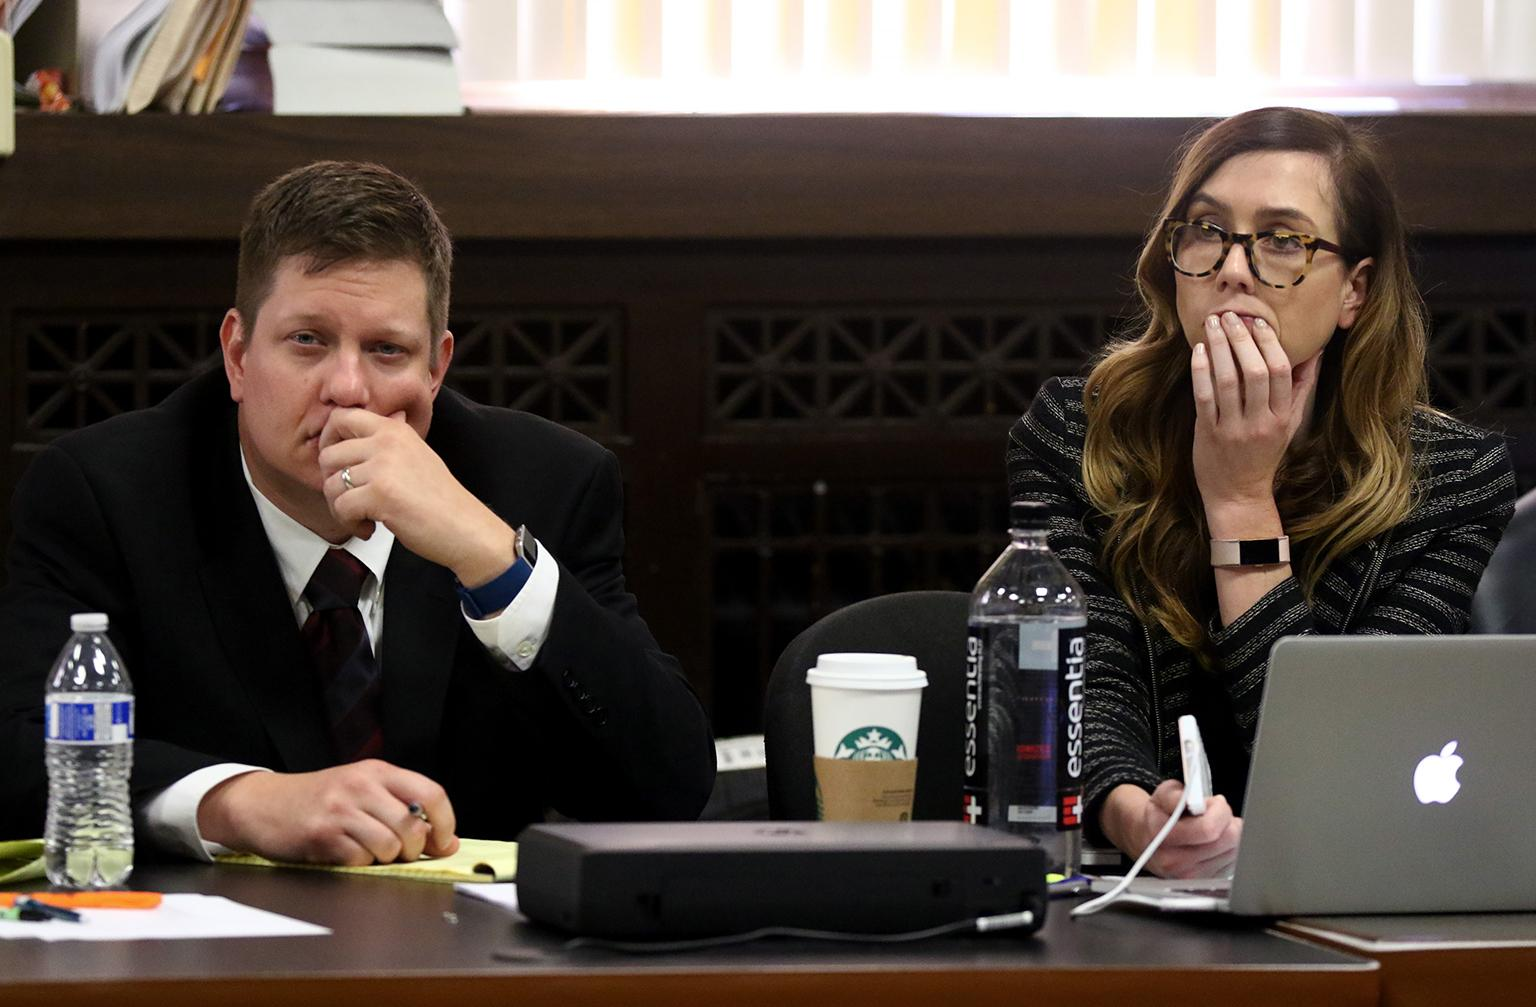 Chicago police Officer Jason Van Dyke and defense attorney Elizabeth Fleming listen to testimony Wednesday, Sept. 26, 2018 during the seventh day of the trial. (John J. Kim / Chicago Tribune / Pool)